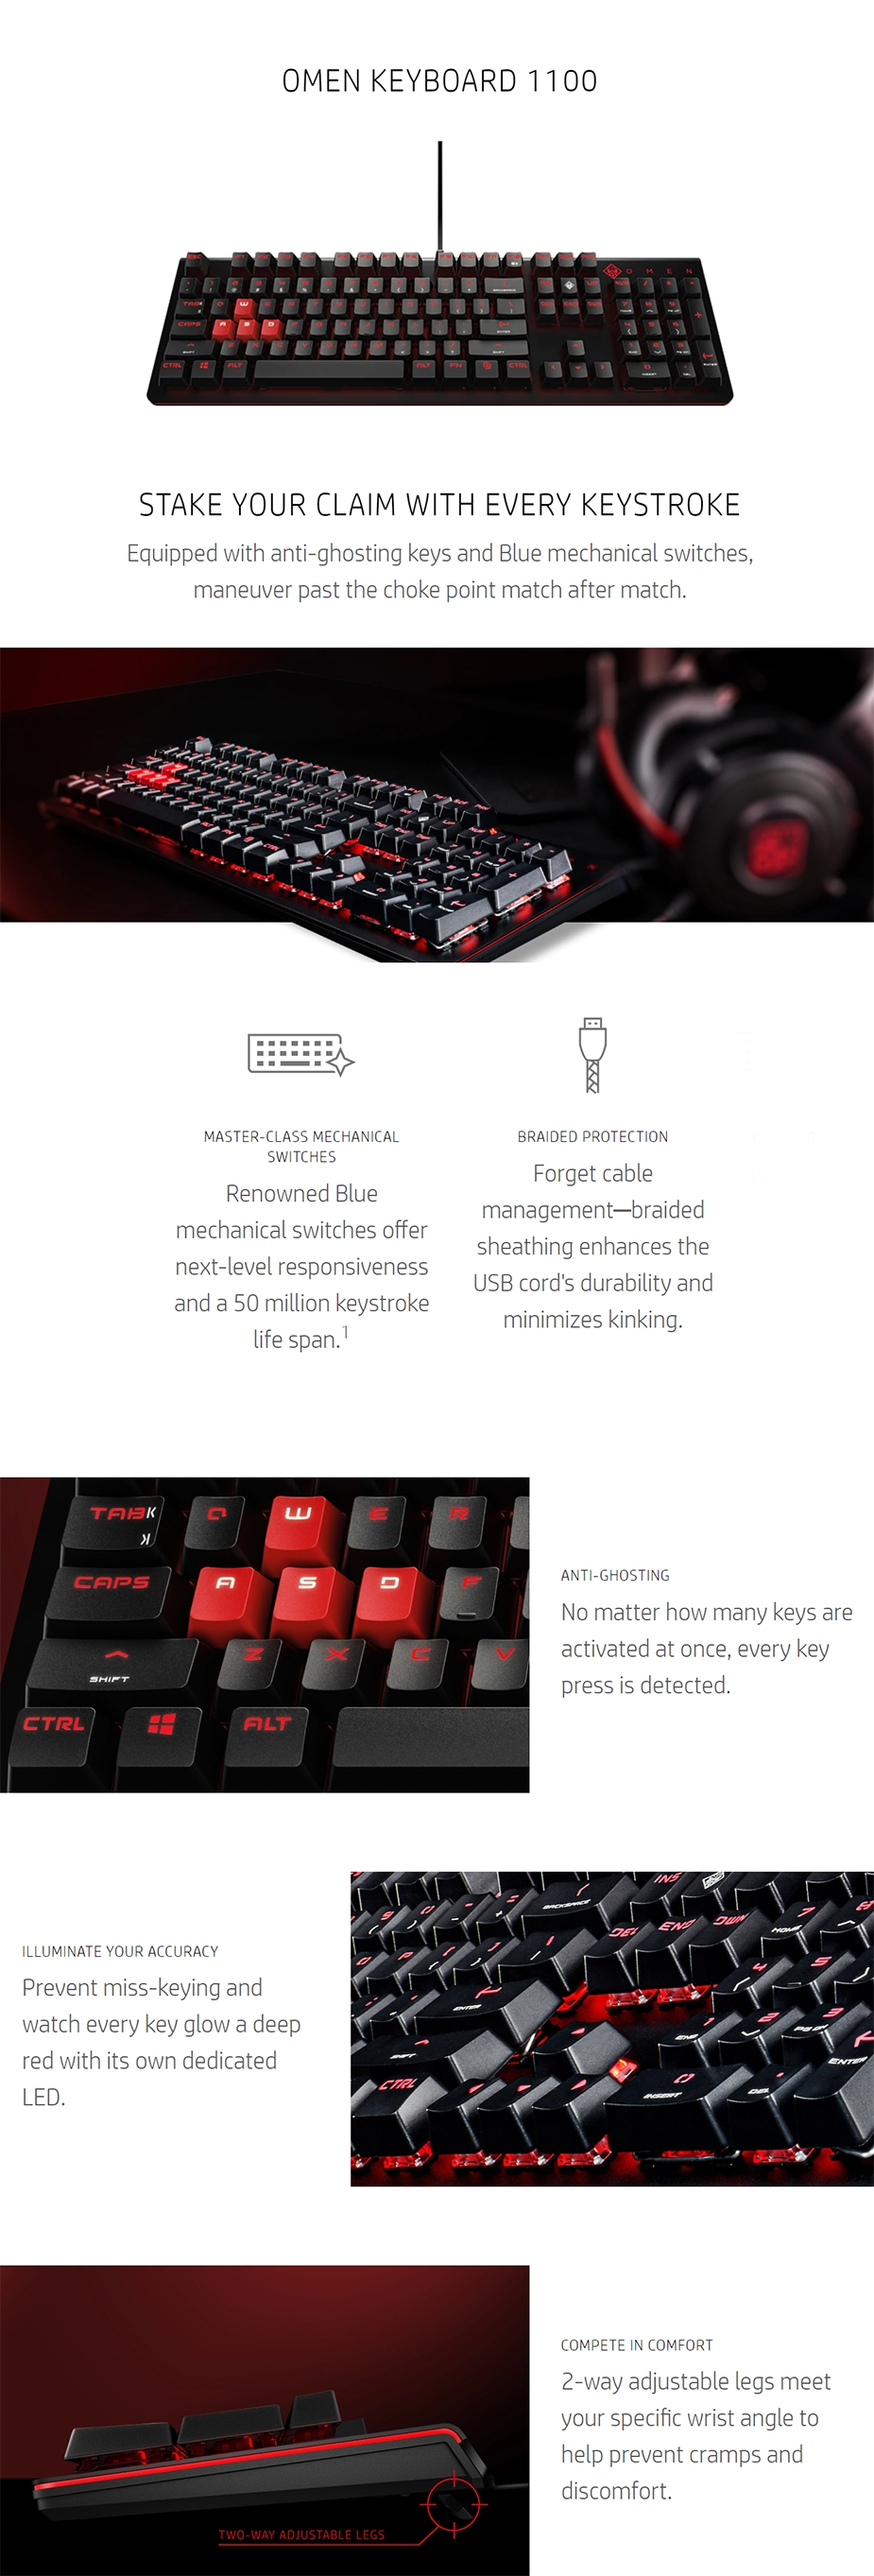 HP OMEN 1100 Mechanical Gaming Keyboard - Desktop Overview 1